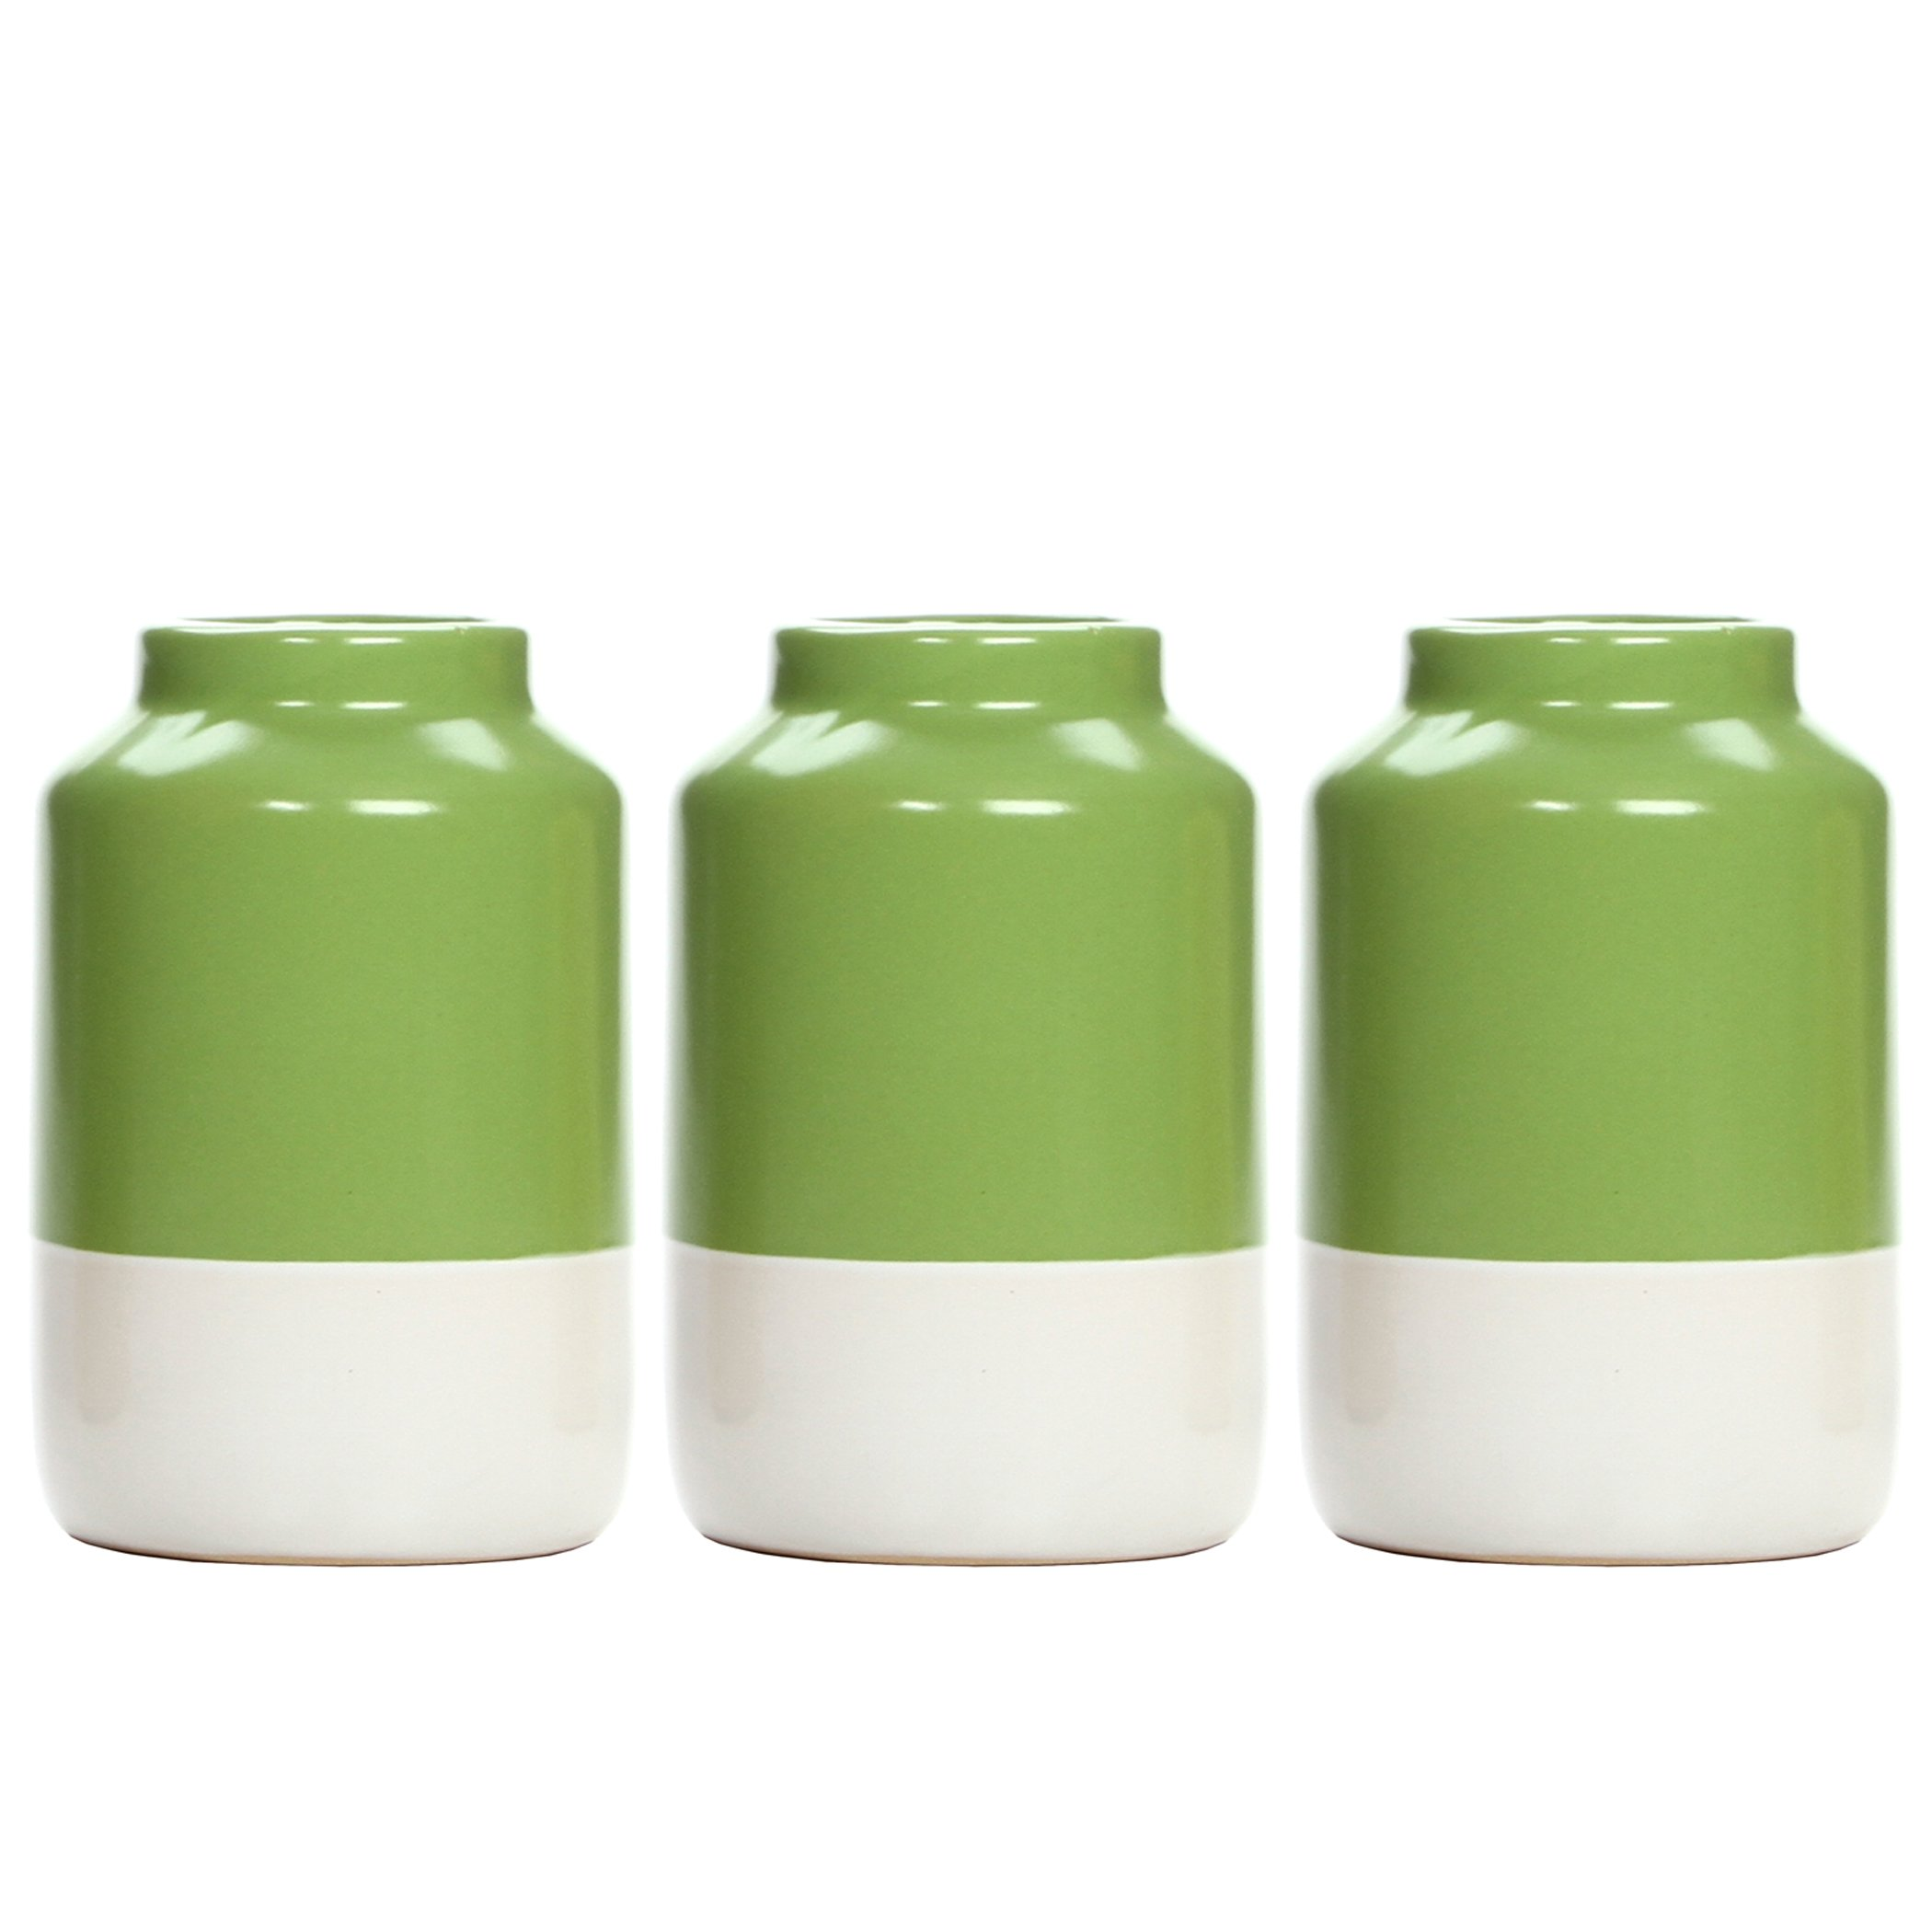 Hosley's Set of 3 Green and White Ceramic Vases - 5'' High. Ideal Gift for Wedding, Party, Dried Floral Arrangements, Spa, Votive LED Candle Gardens O7